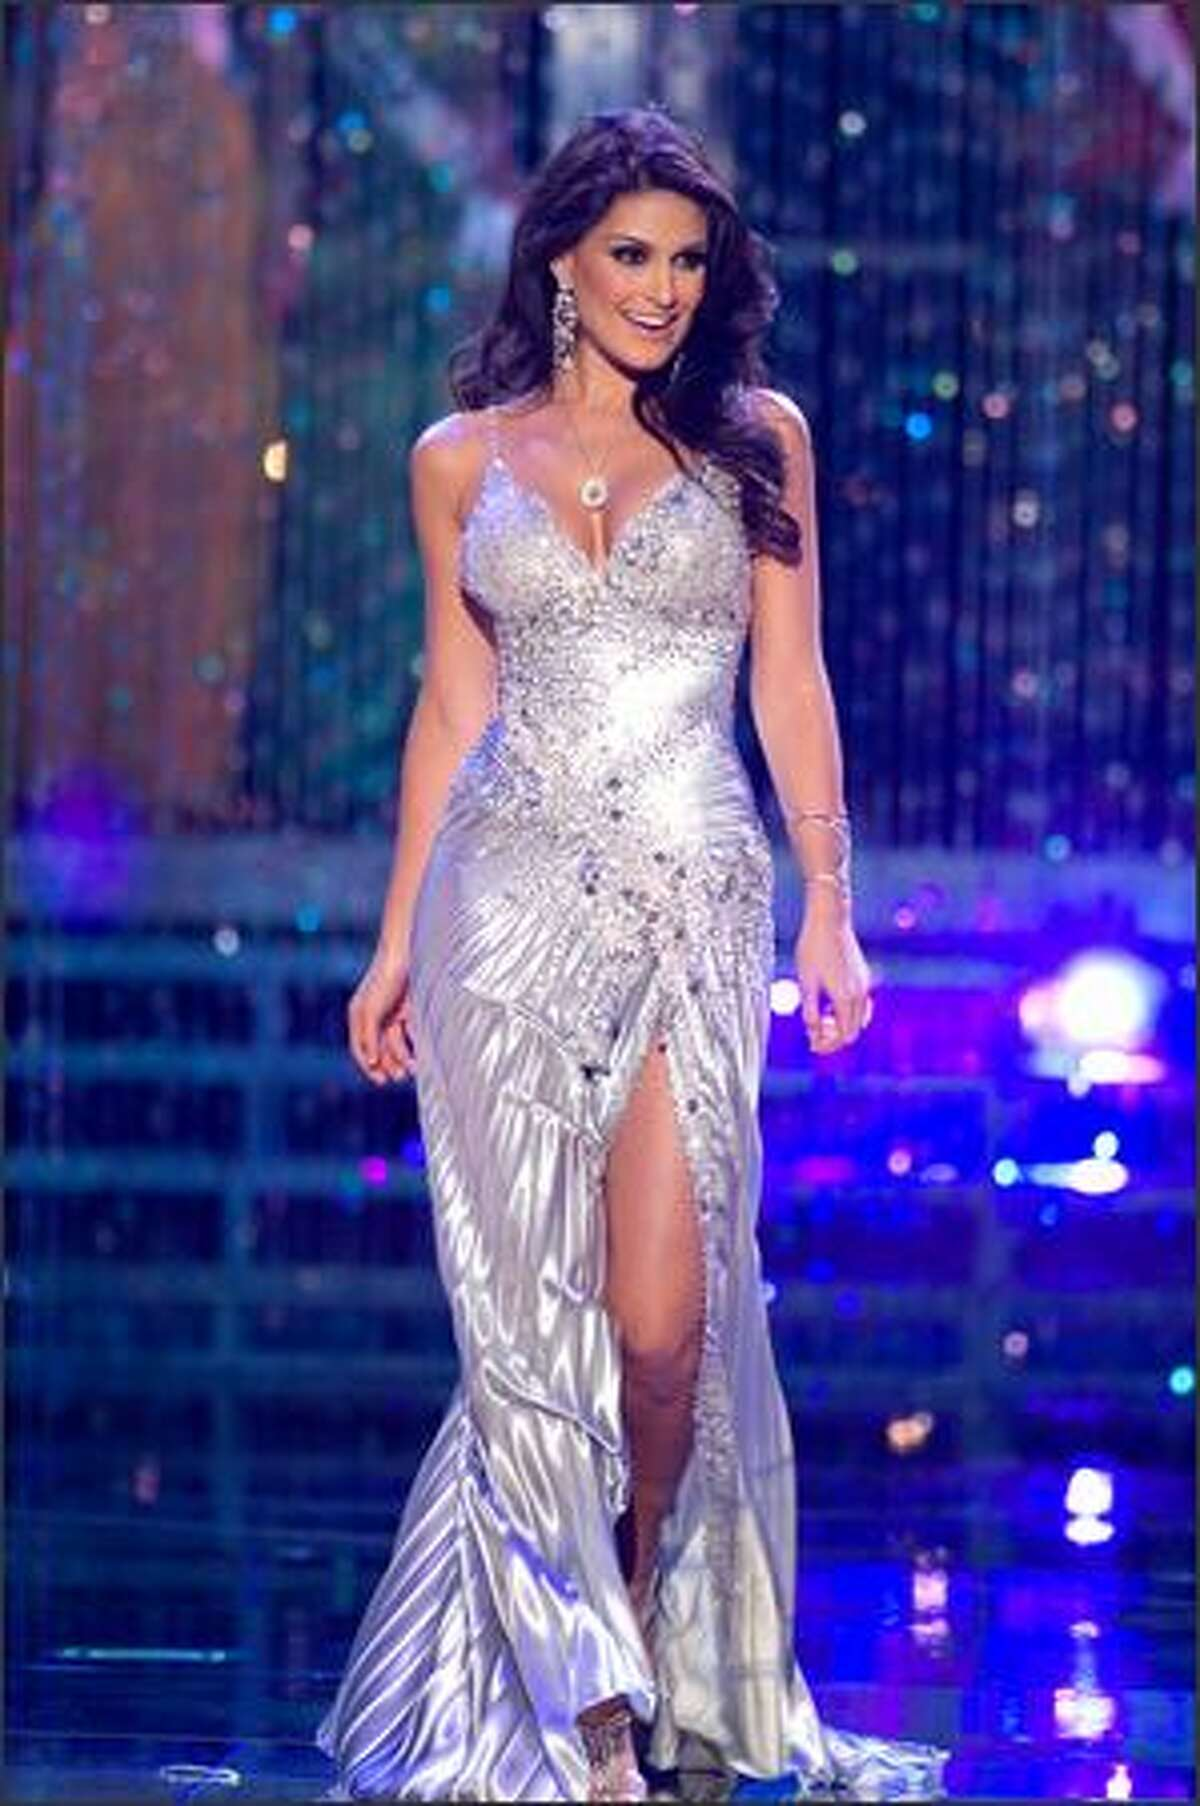 Ly Jonaitis, Miss Venezuela 2007, participates in the evening gown portion of the broadcast as one of the 10 finalists.